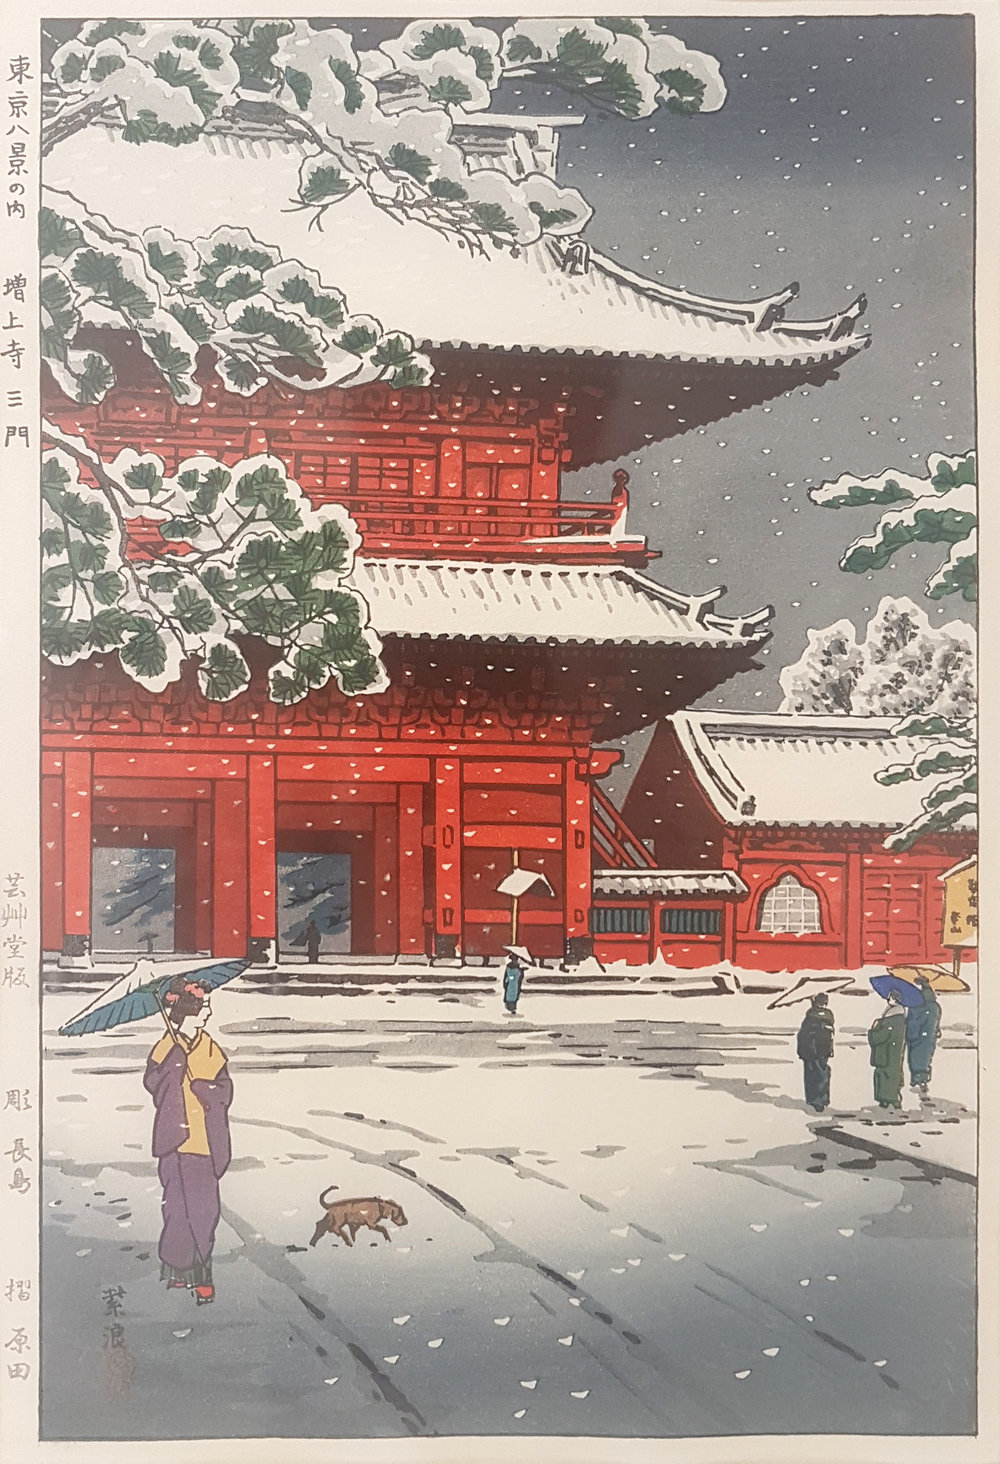 Shiro Kasamatsu (1898-1991)  The Main Gate of Zojoji Temple, 1953 Original Japanese Woodblock print, from 8 Scenes of Tokyo 25.4 x 37.5cm (image)  Was £485, now just  £410